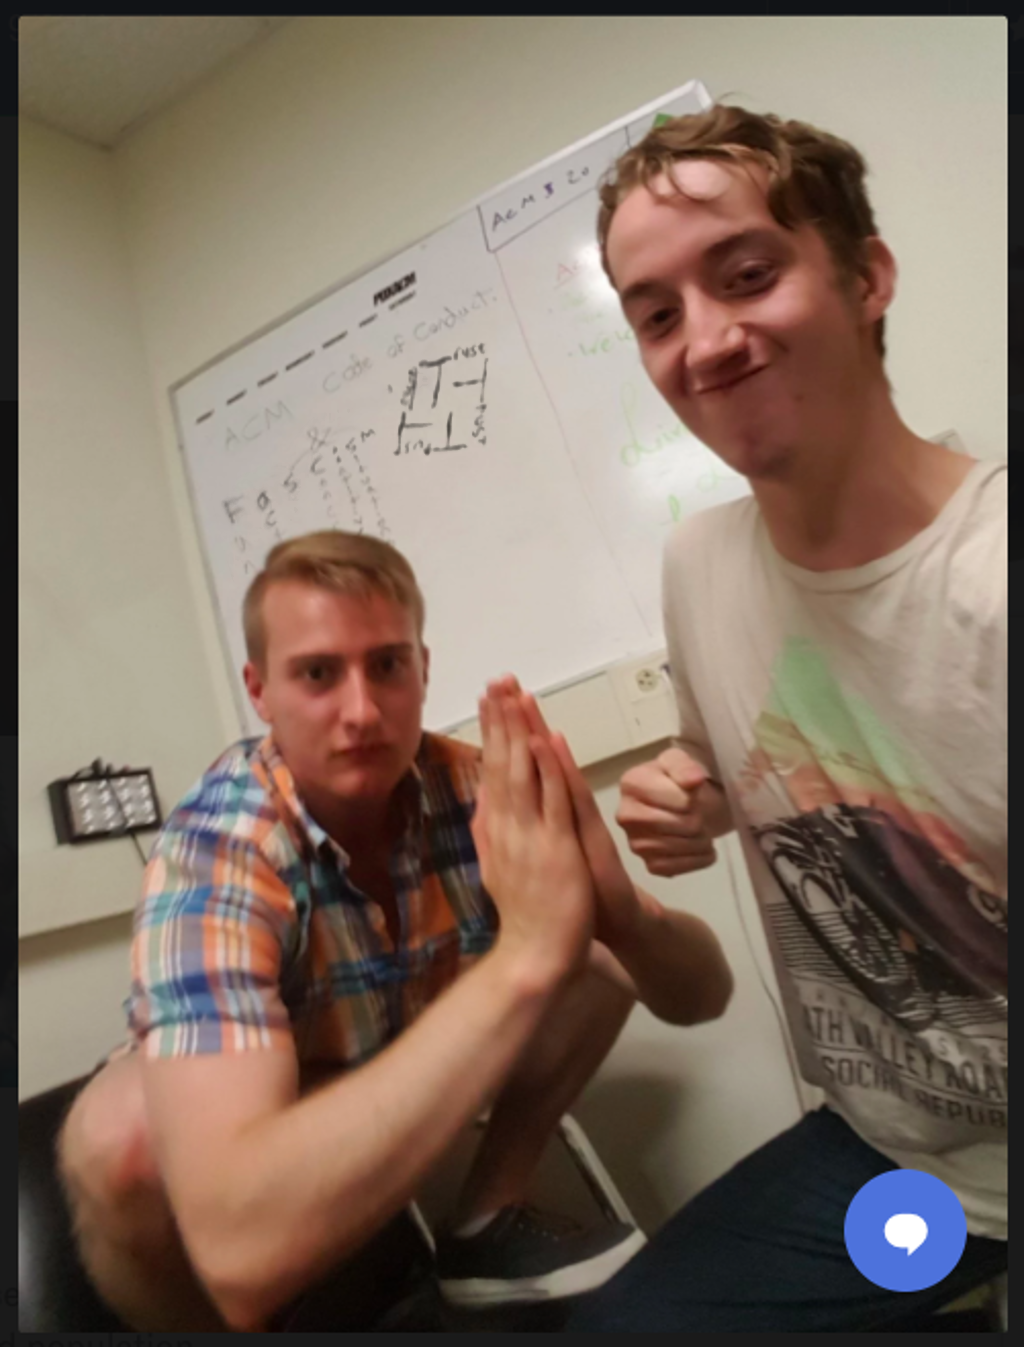 Stephen Johnston and Liam Wynn pose with a swastika